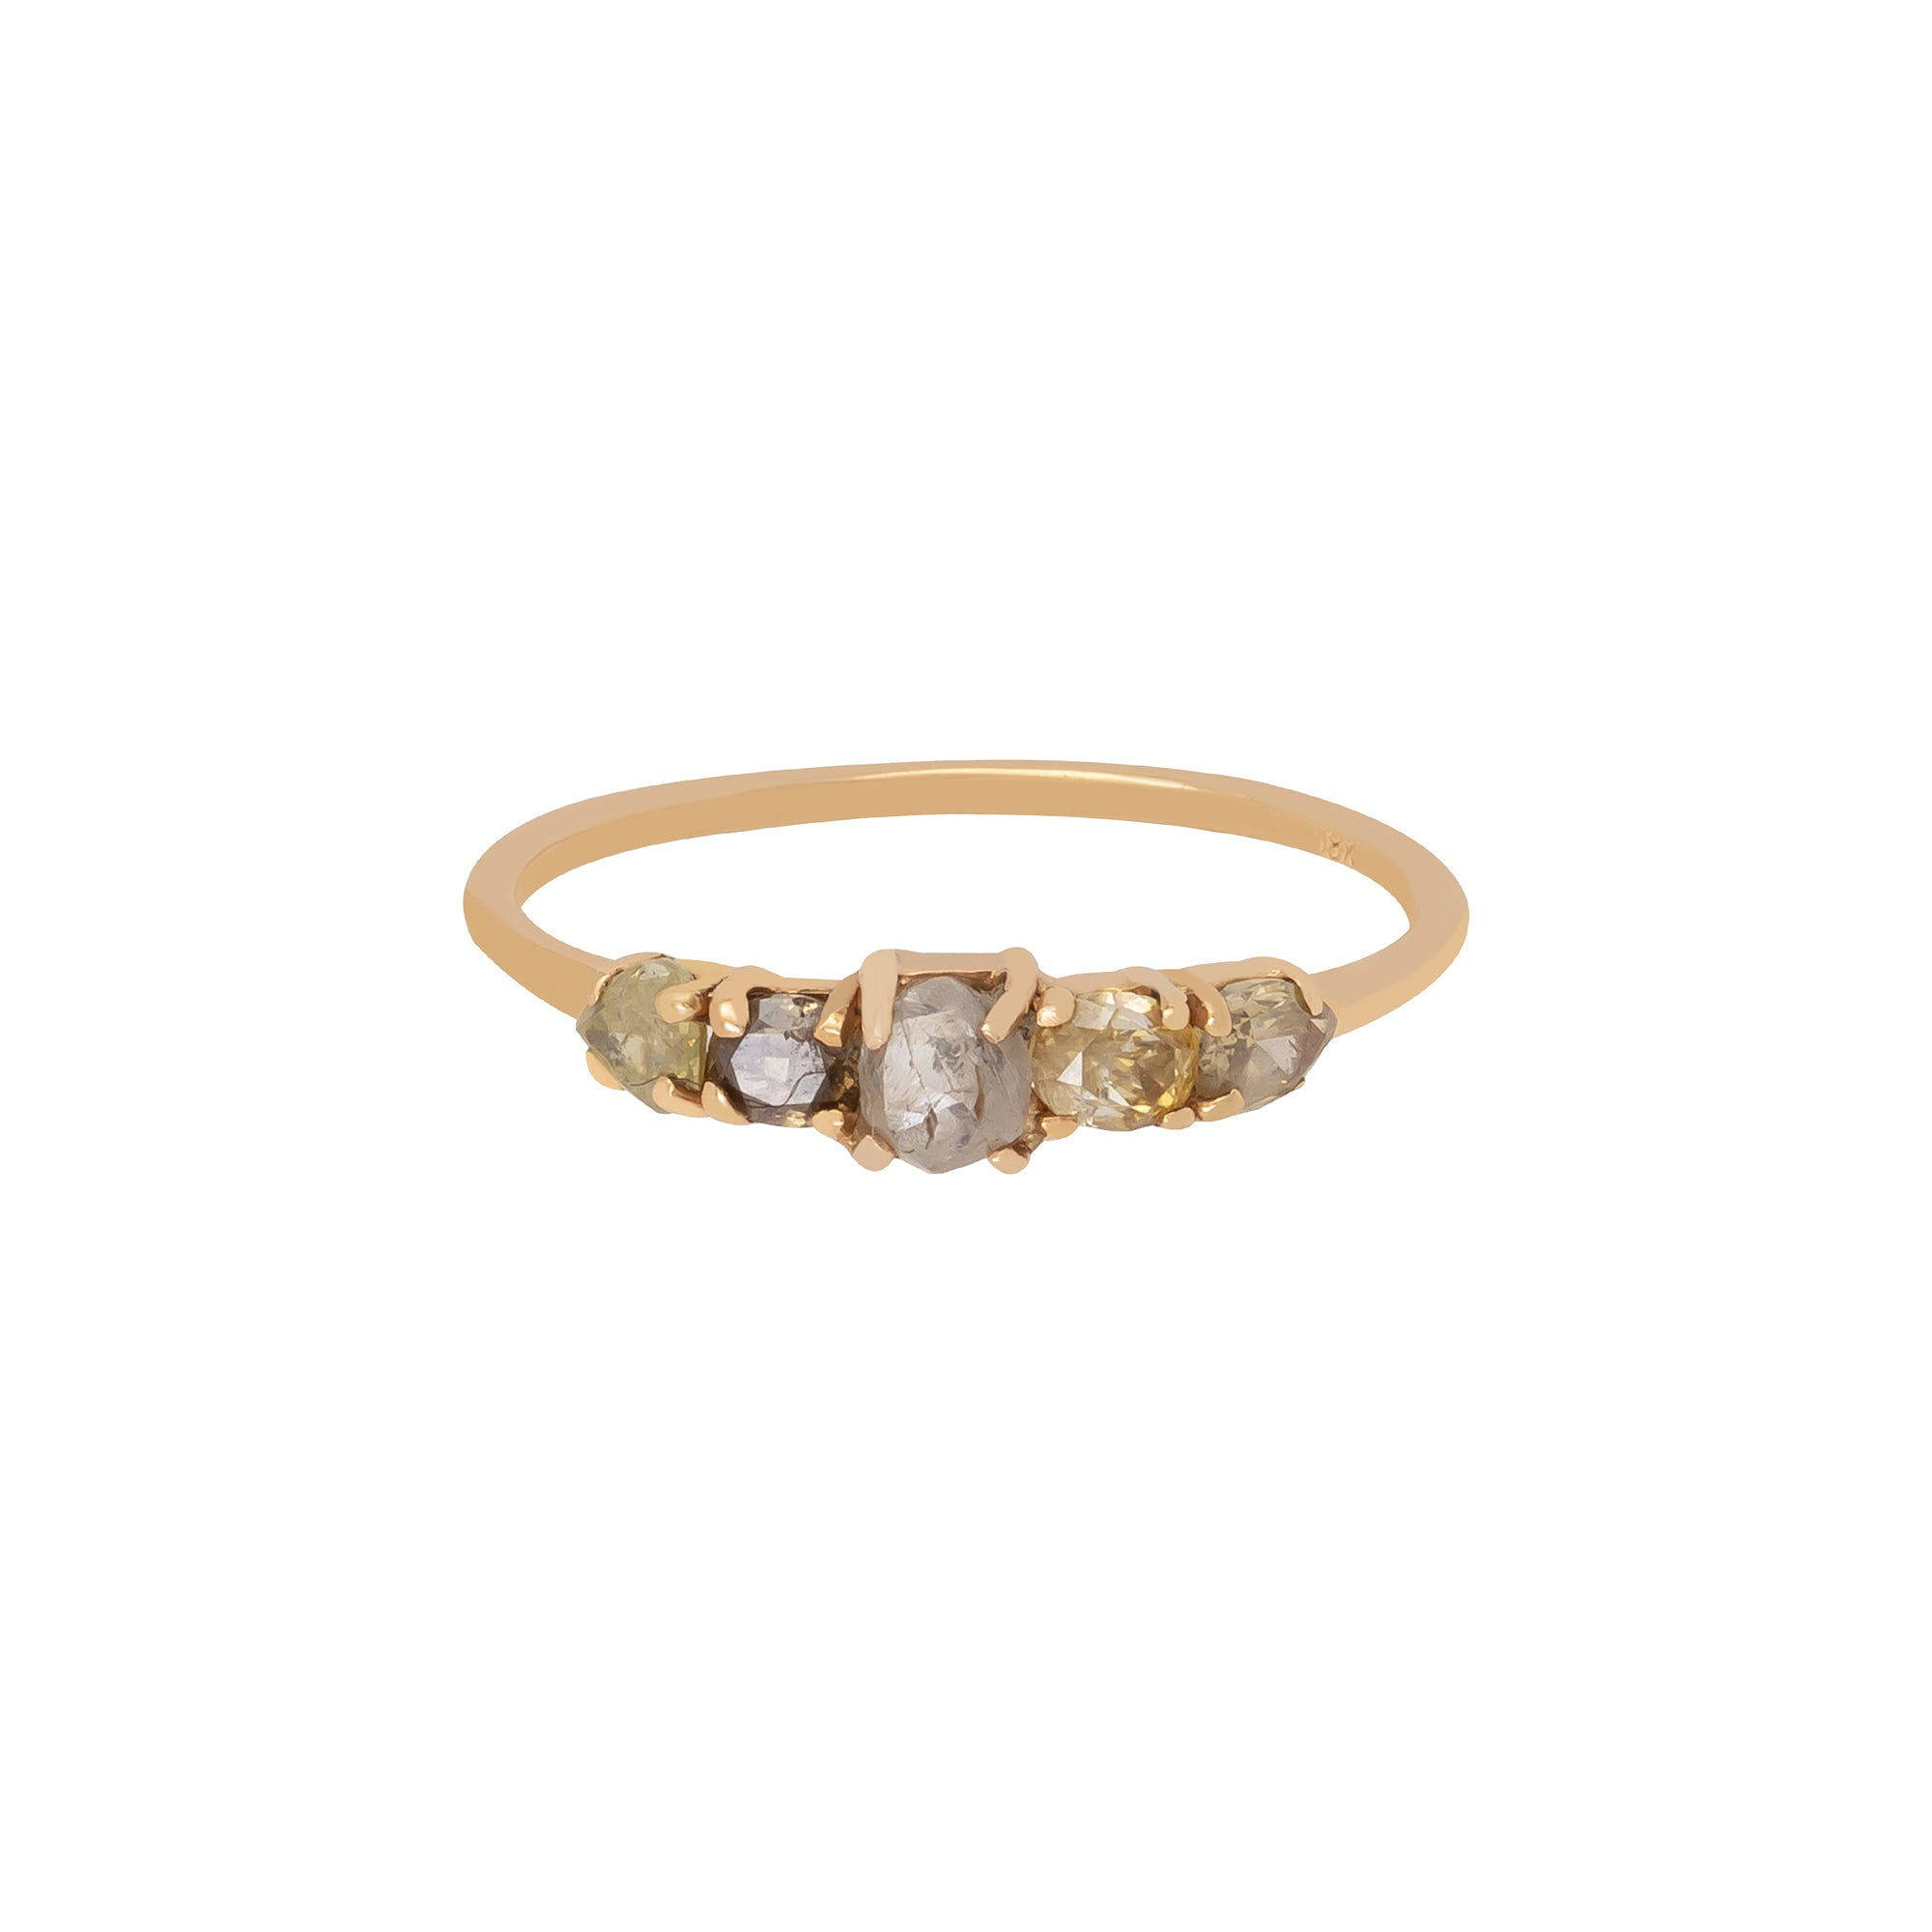 Stardust Ring 5 Rough Diamond Ring - Xiao Wang - Rings | Broken English Jewelry